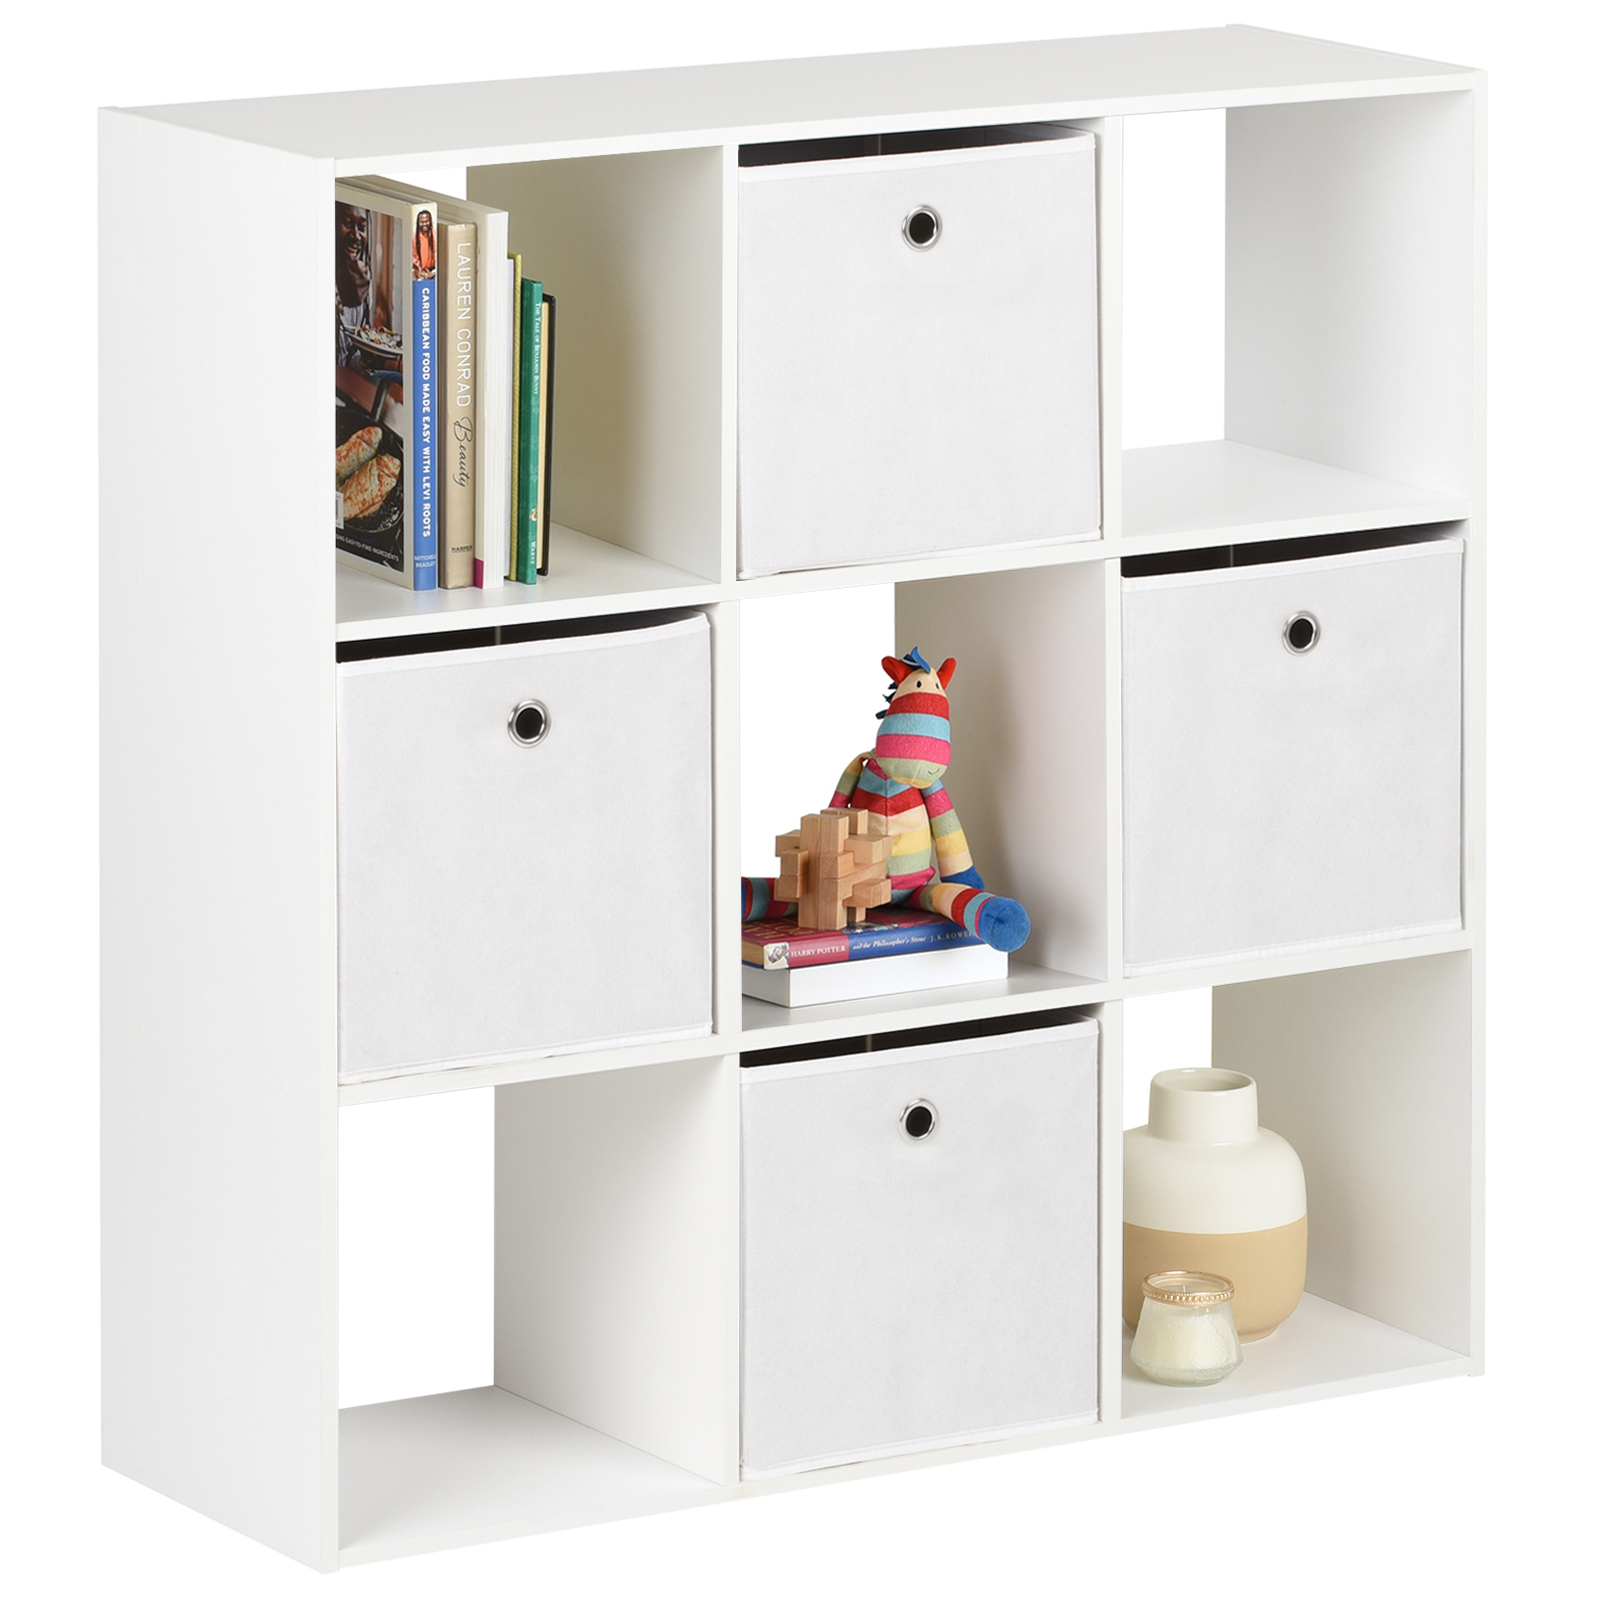 Details About Hartleys White 9 Cube Shelving Unit Storage Furniture Shelves  & 4 Fabric Boxes